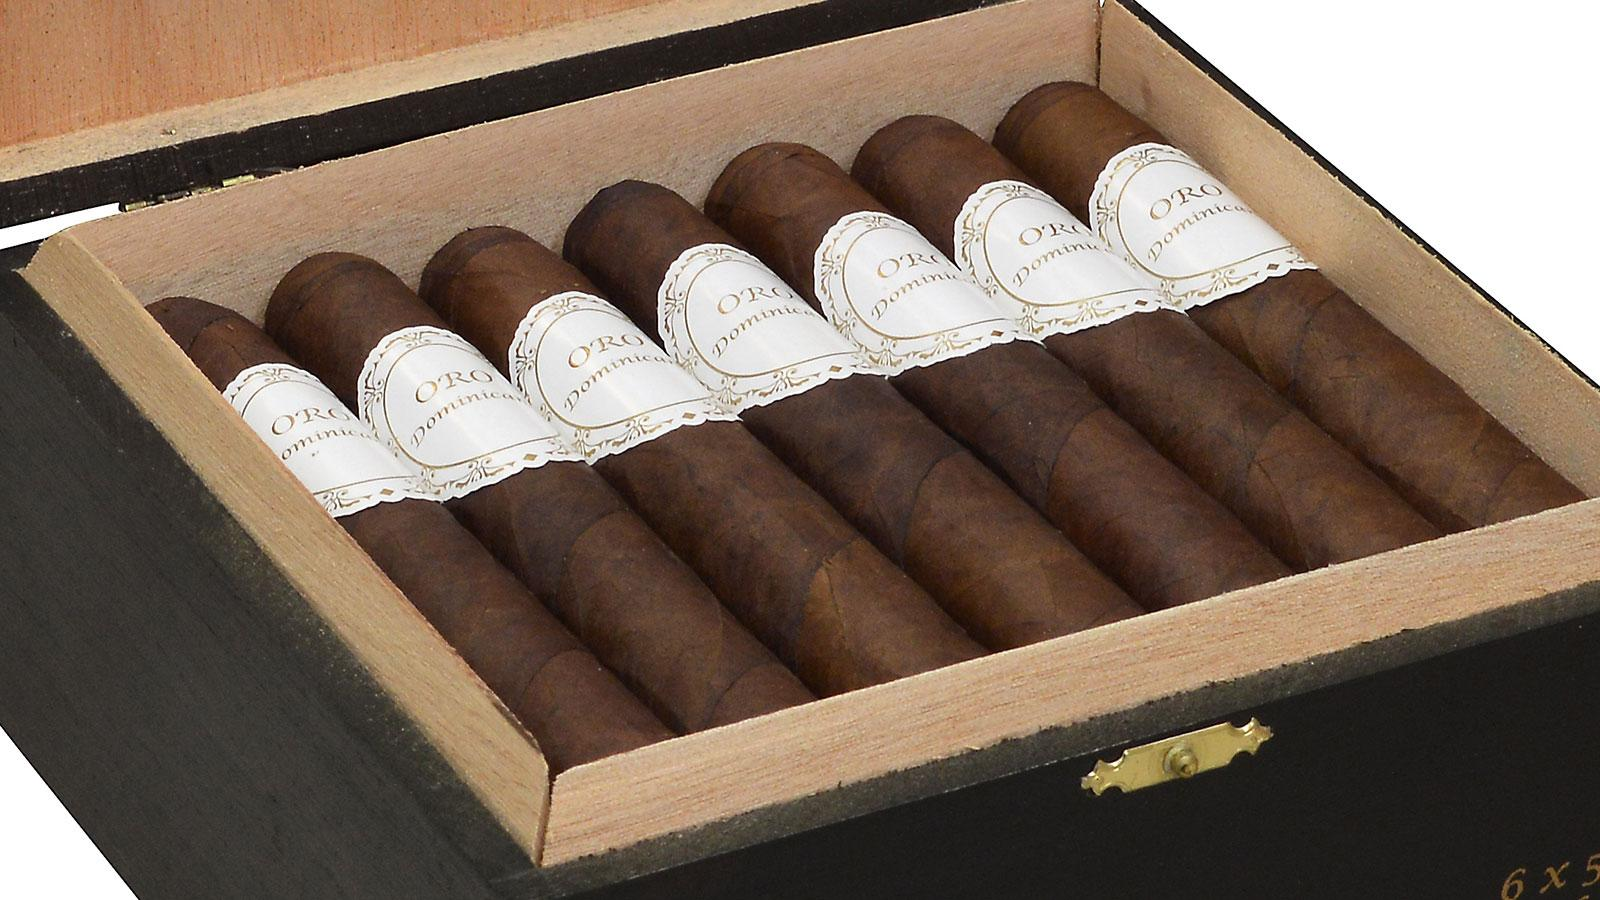 New Quesada Oro Dominicana To Debut